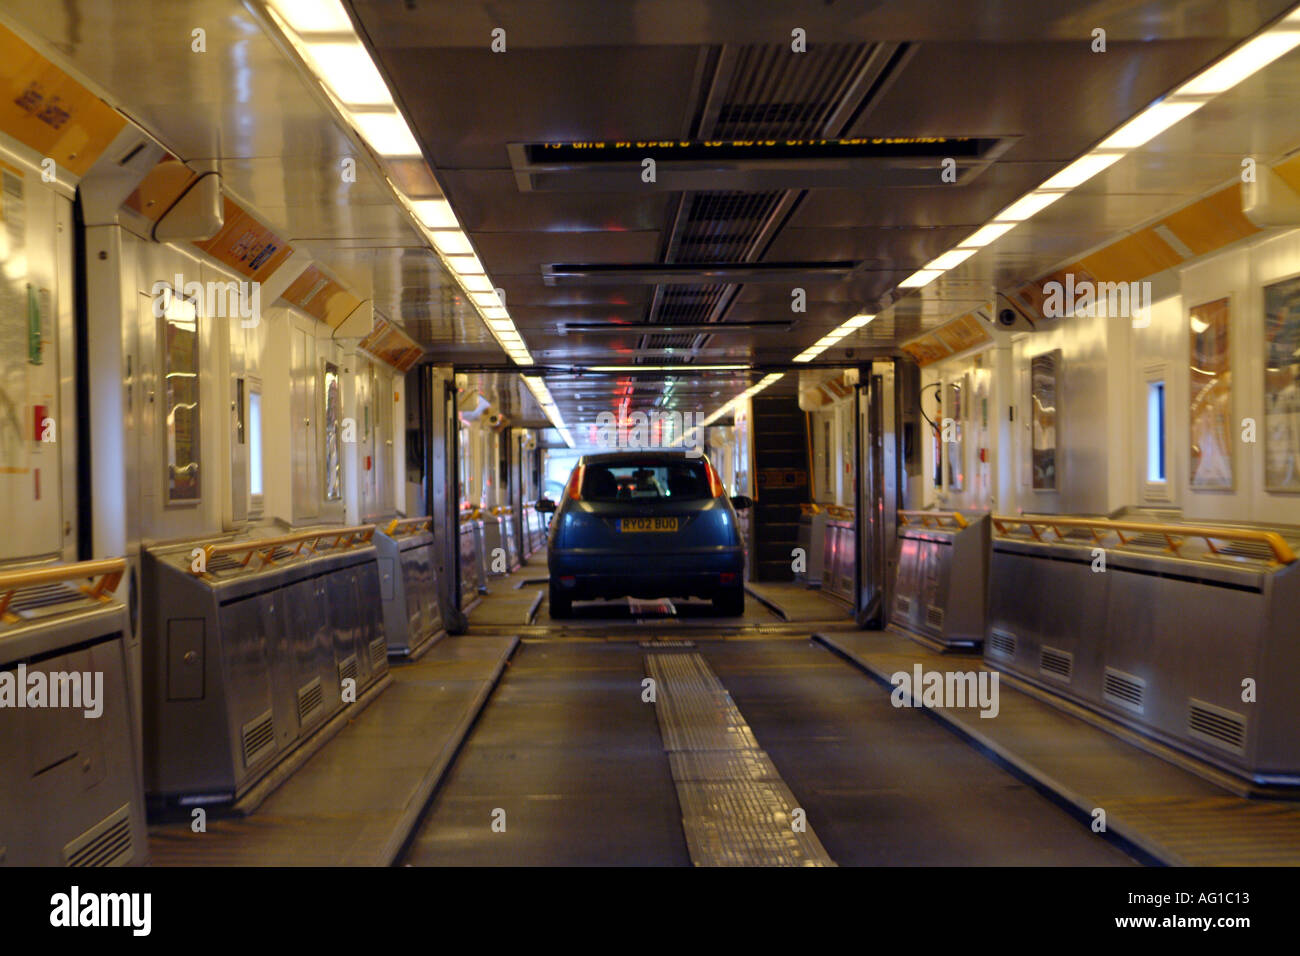 Bus Paris Calais L 39intérieur De Transport Eurotunnel Cross Channel Débarque